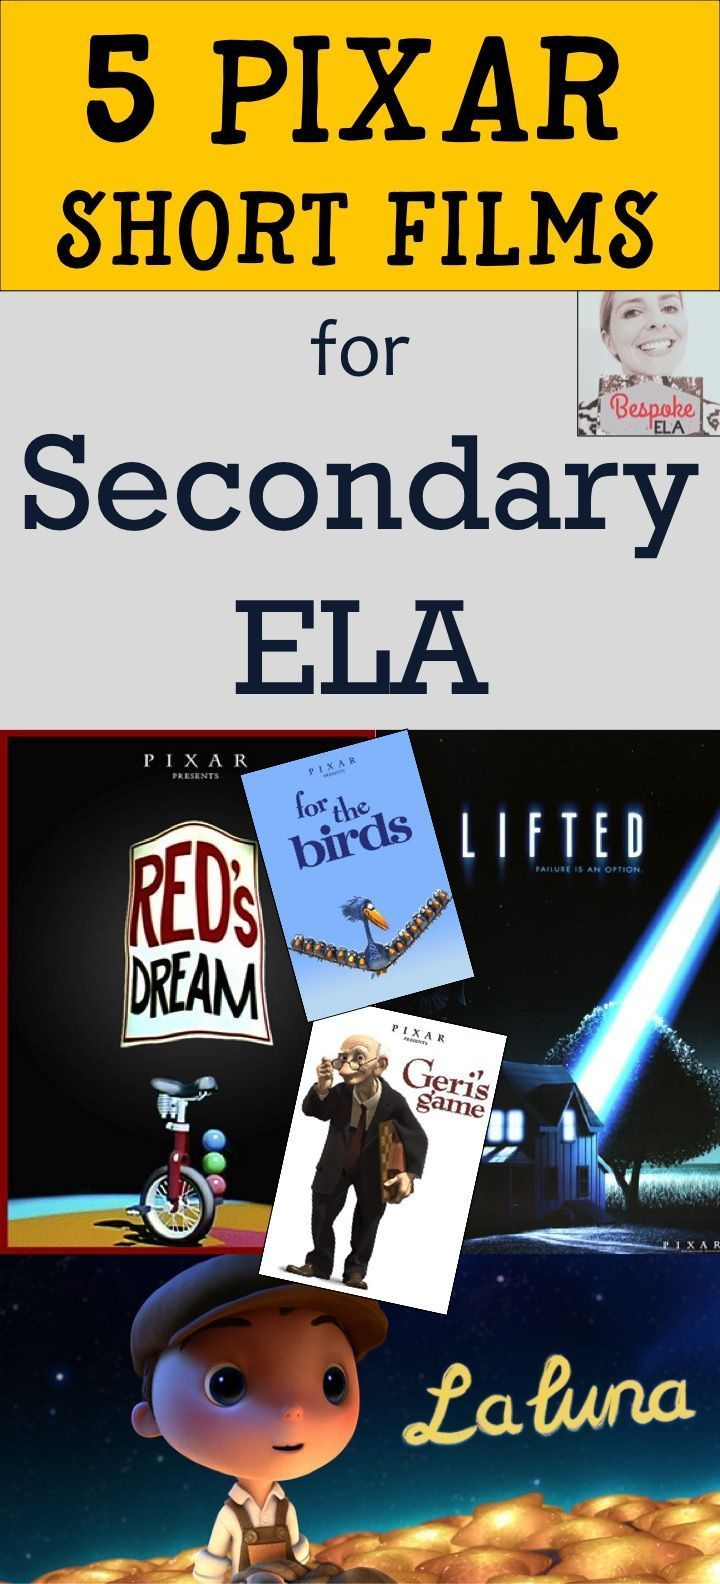 In this blog post by Bespoke ELA, you will find 5 Pixar short films to use for teaching skills in secondary English Language Arts in grades 6-12.  Students will use the short films as a means of discussing theme, irony, suspense, subtext, point of view, and more.  Great for middle school and high school English Language Arts.  By Bespoke ELA